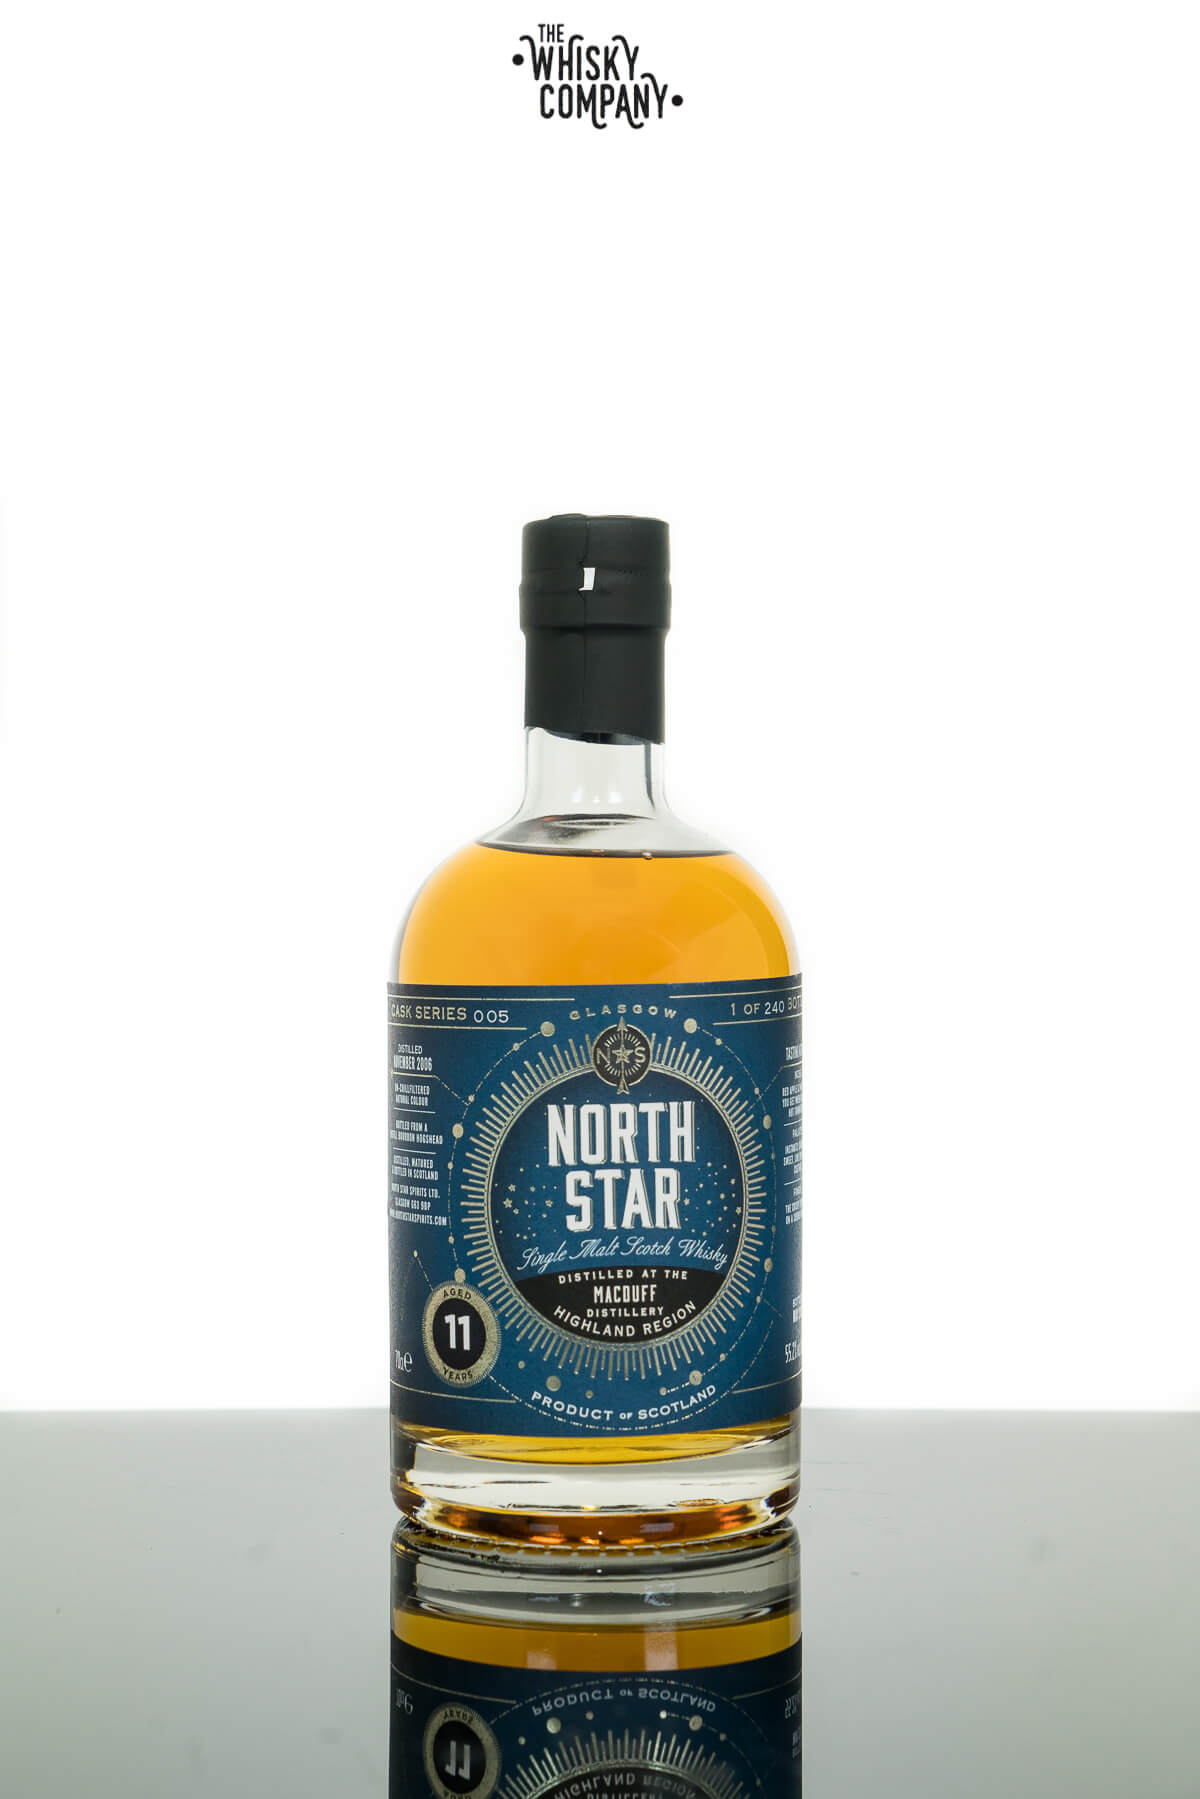 Macduff 11 Years Old 2006 Single Malt Scotch Whisky (North Star) (700ml)